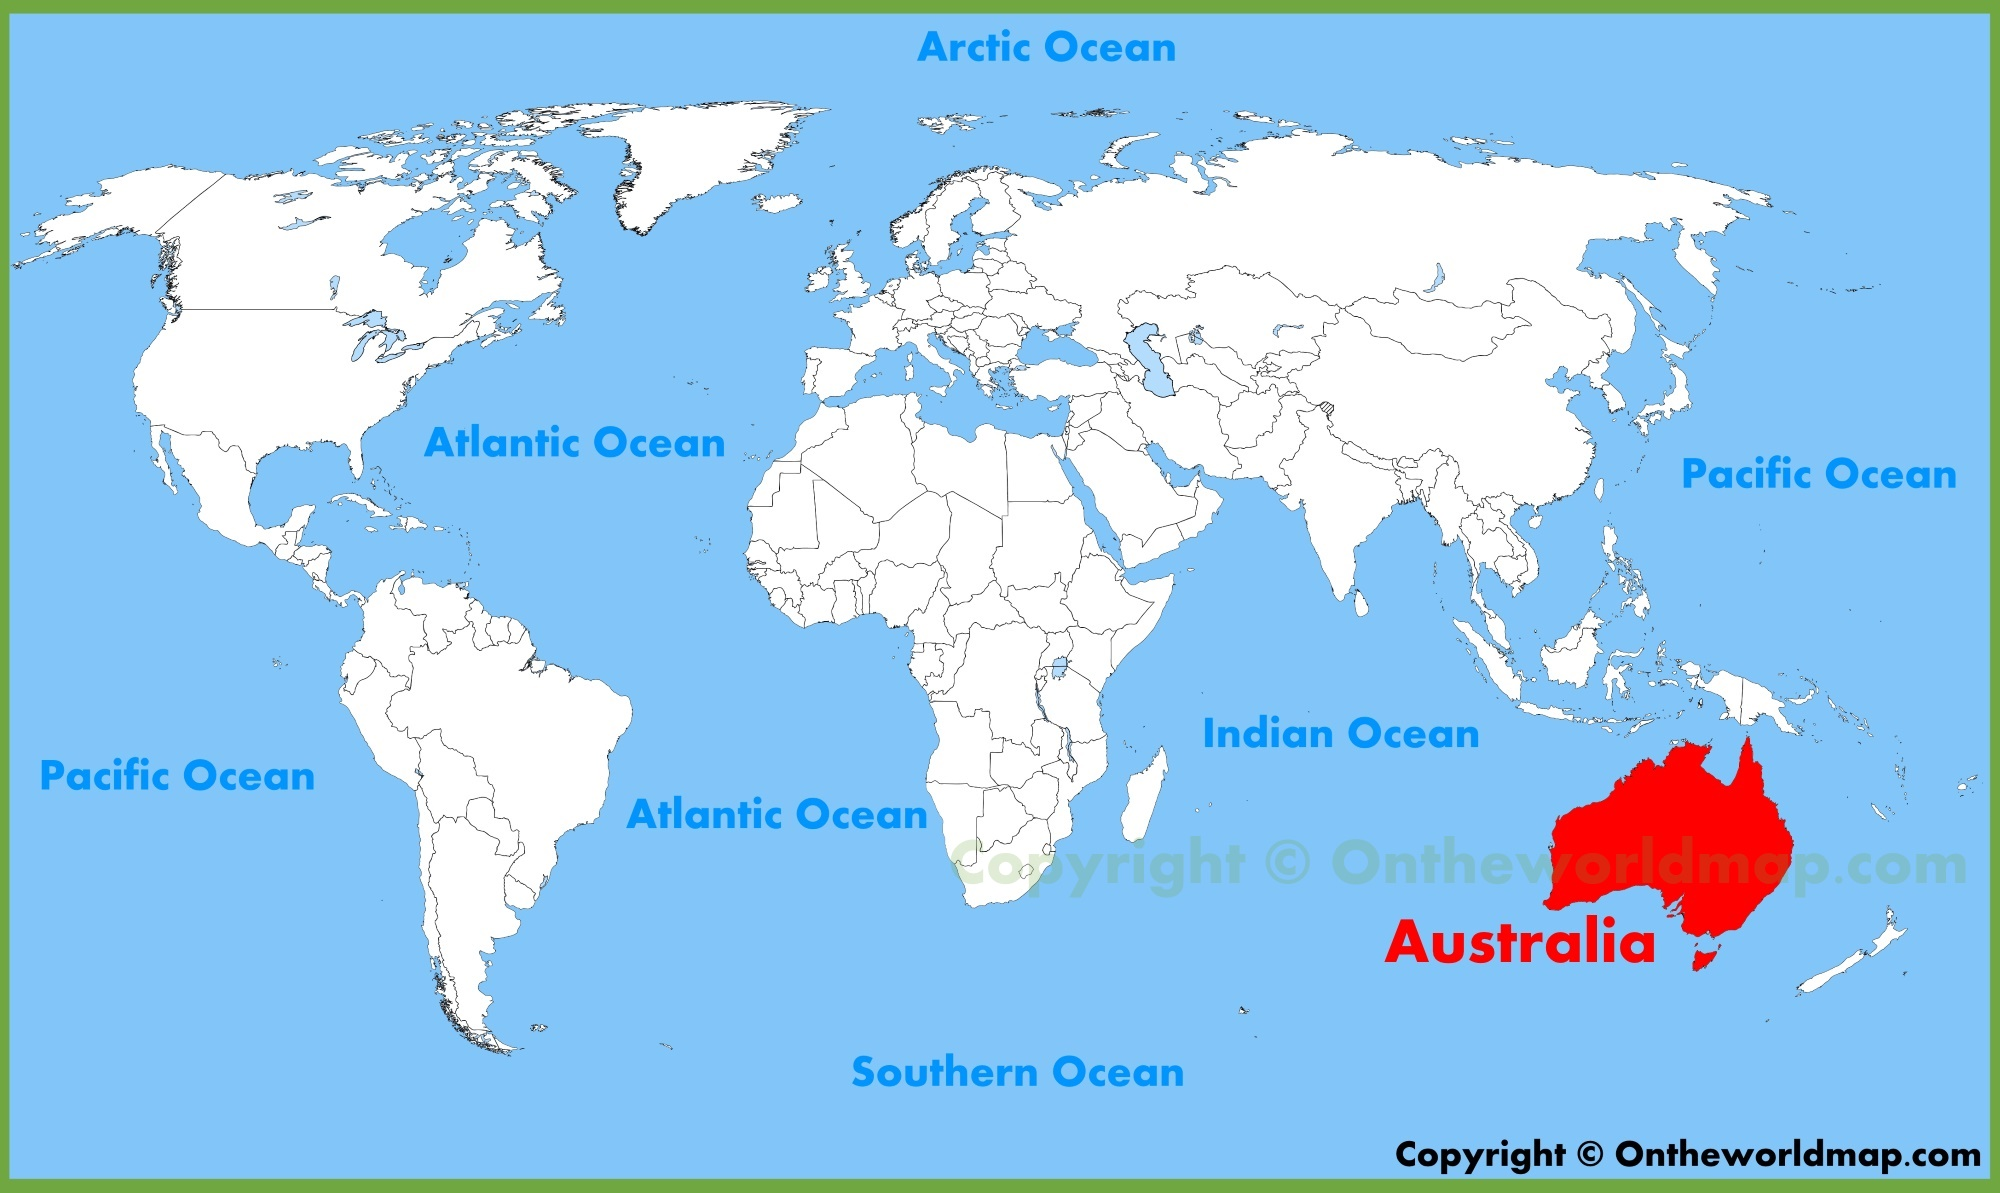 Australia Location On The World Map